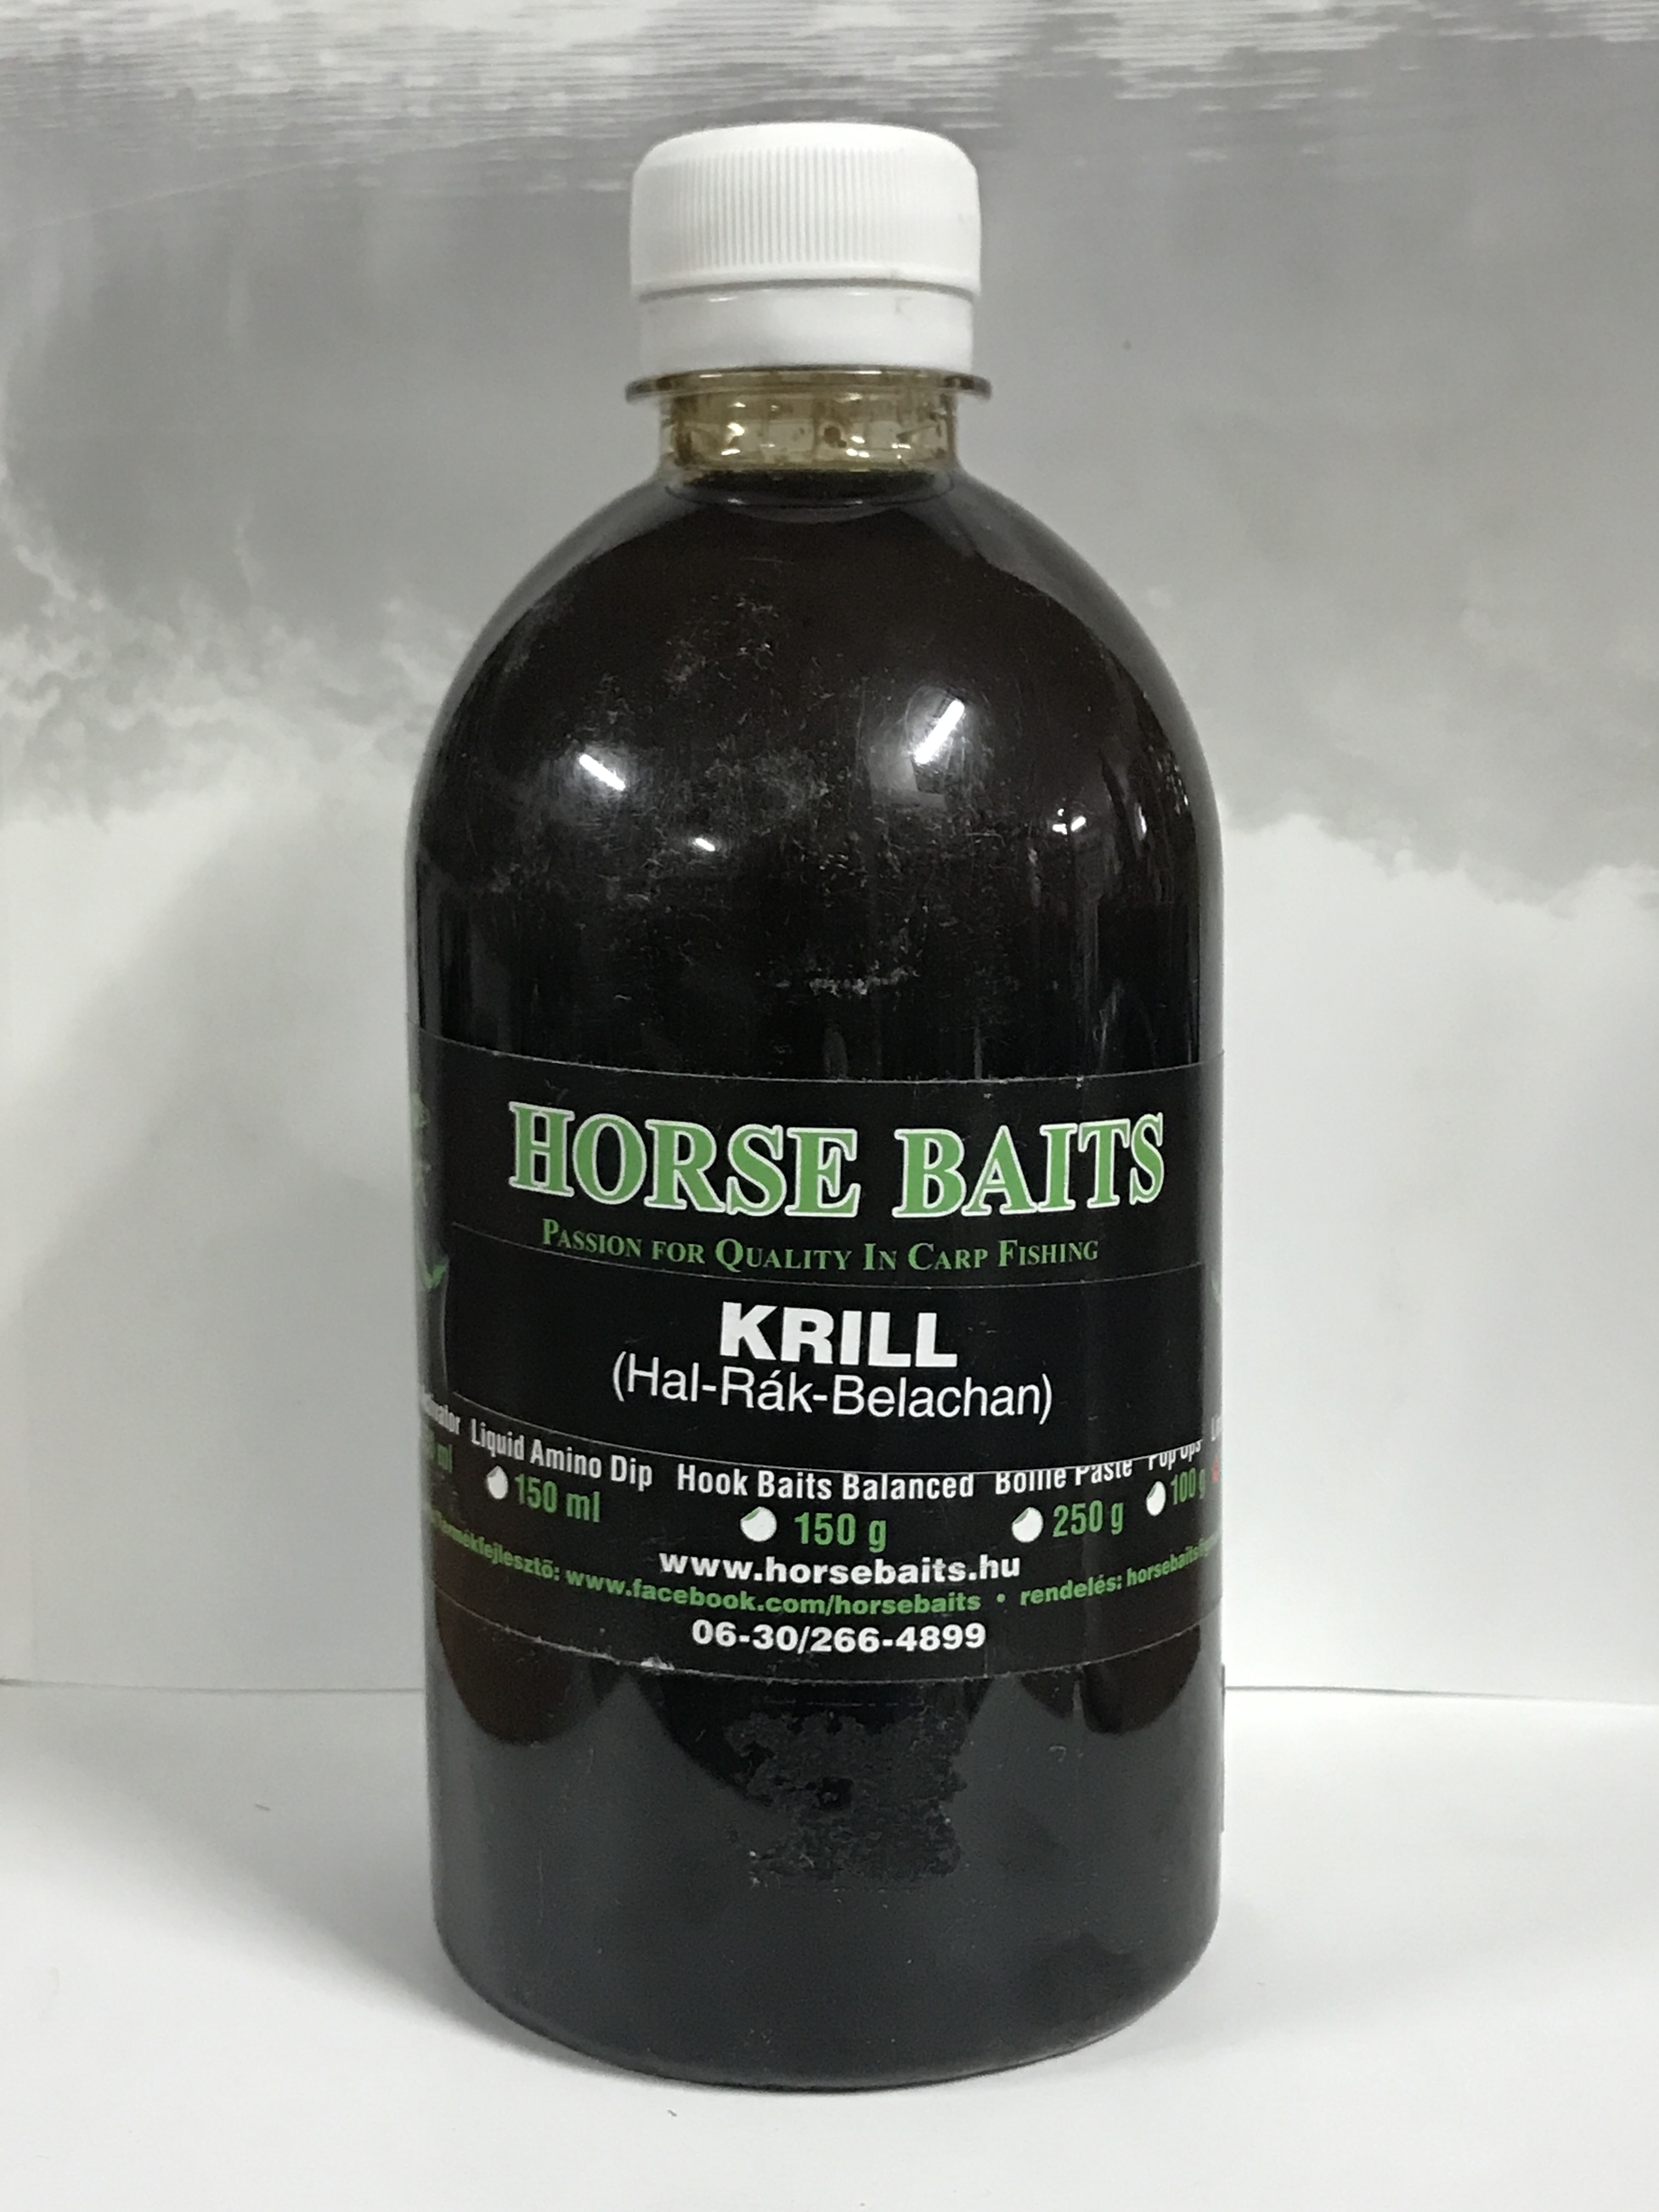 HORSE BAITS Liquid Feed 500ml - Krill